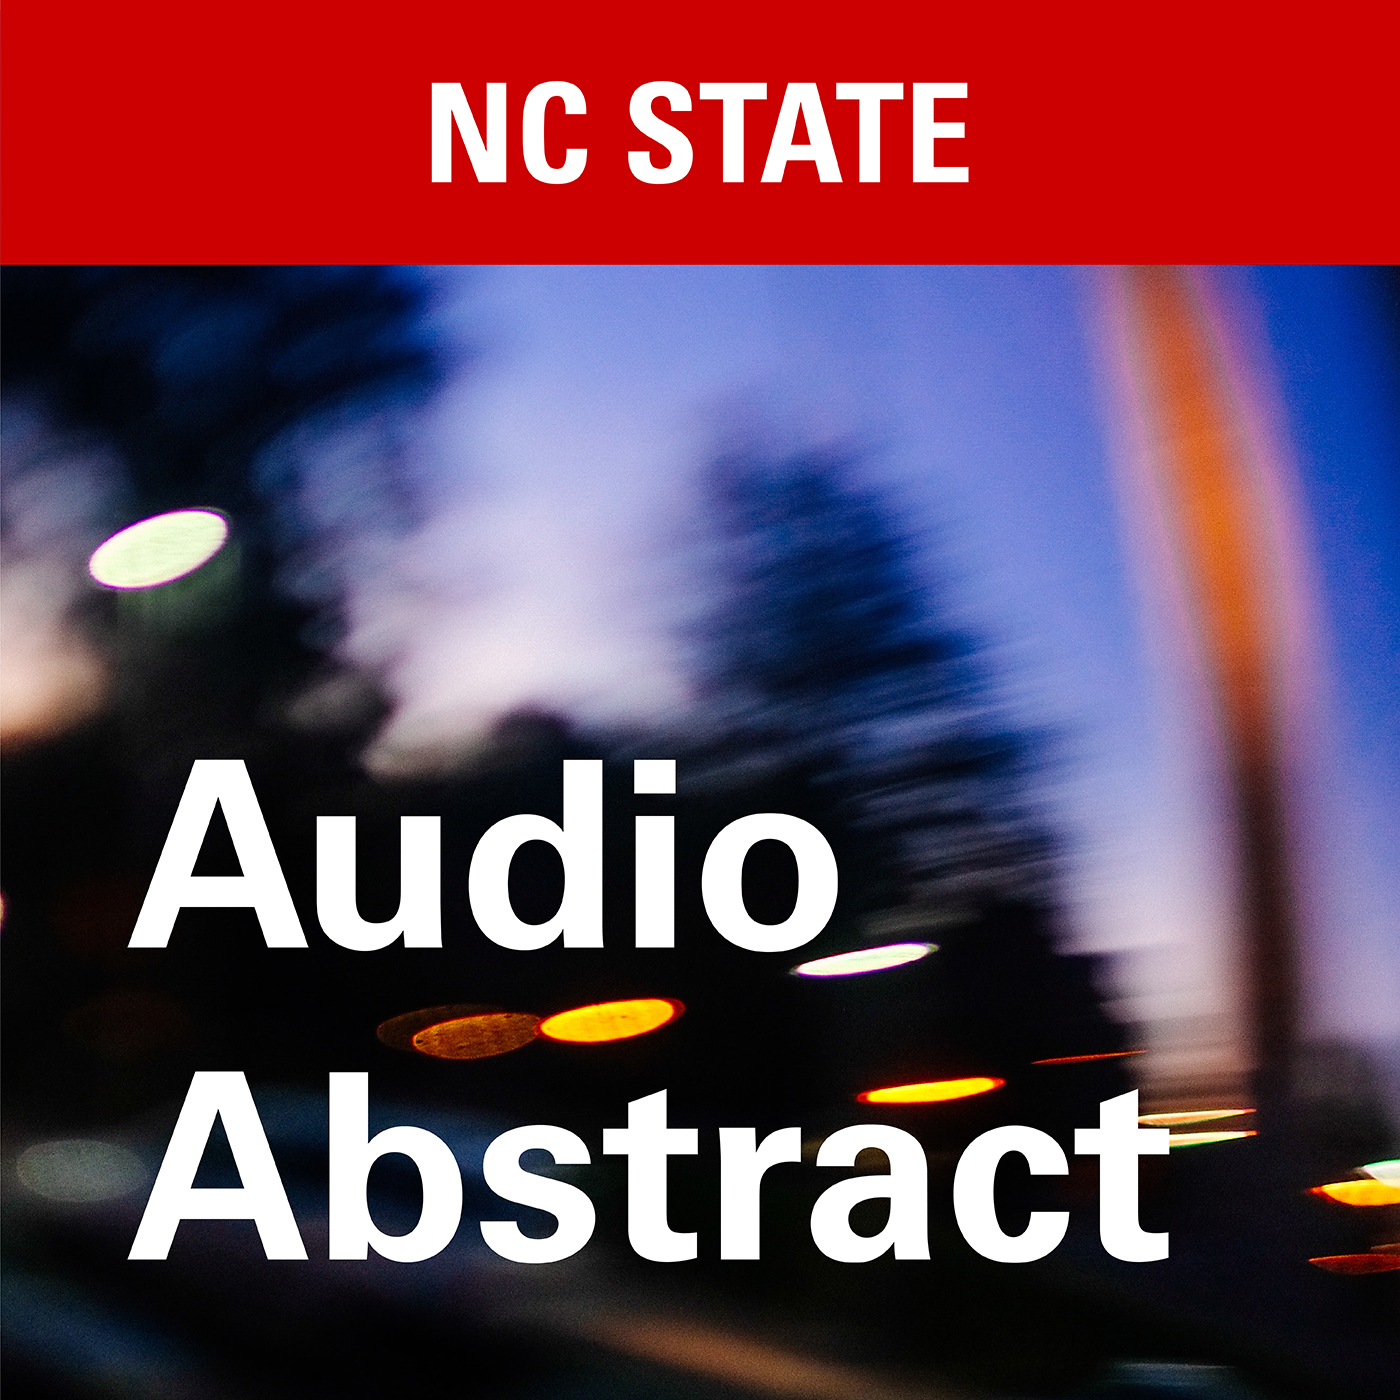 NCState's Audio Abstract